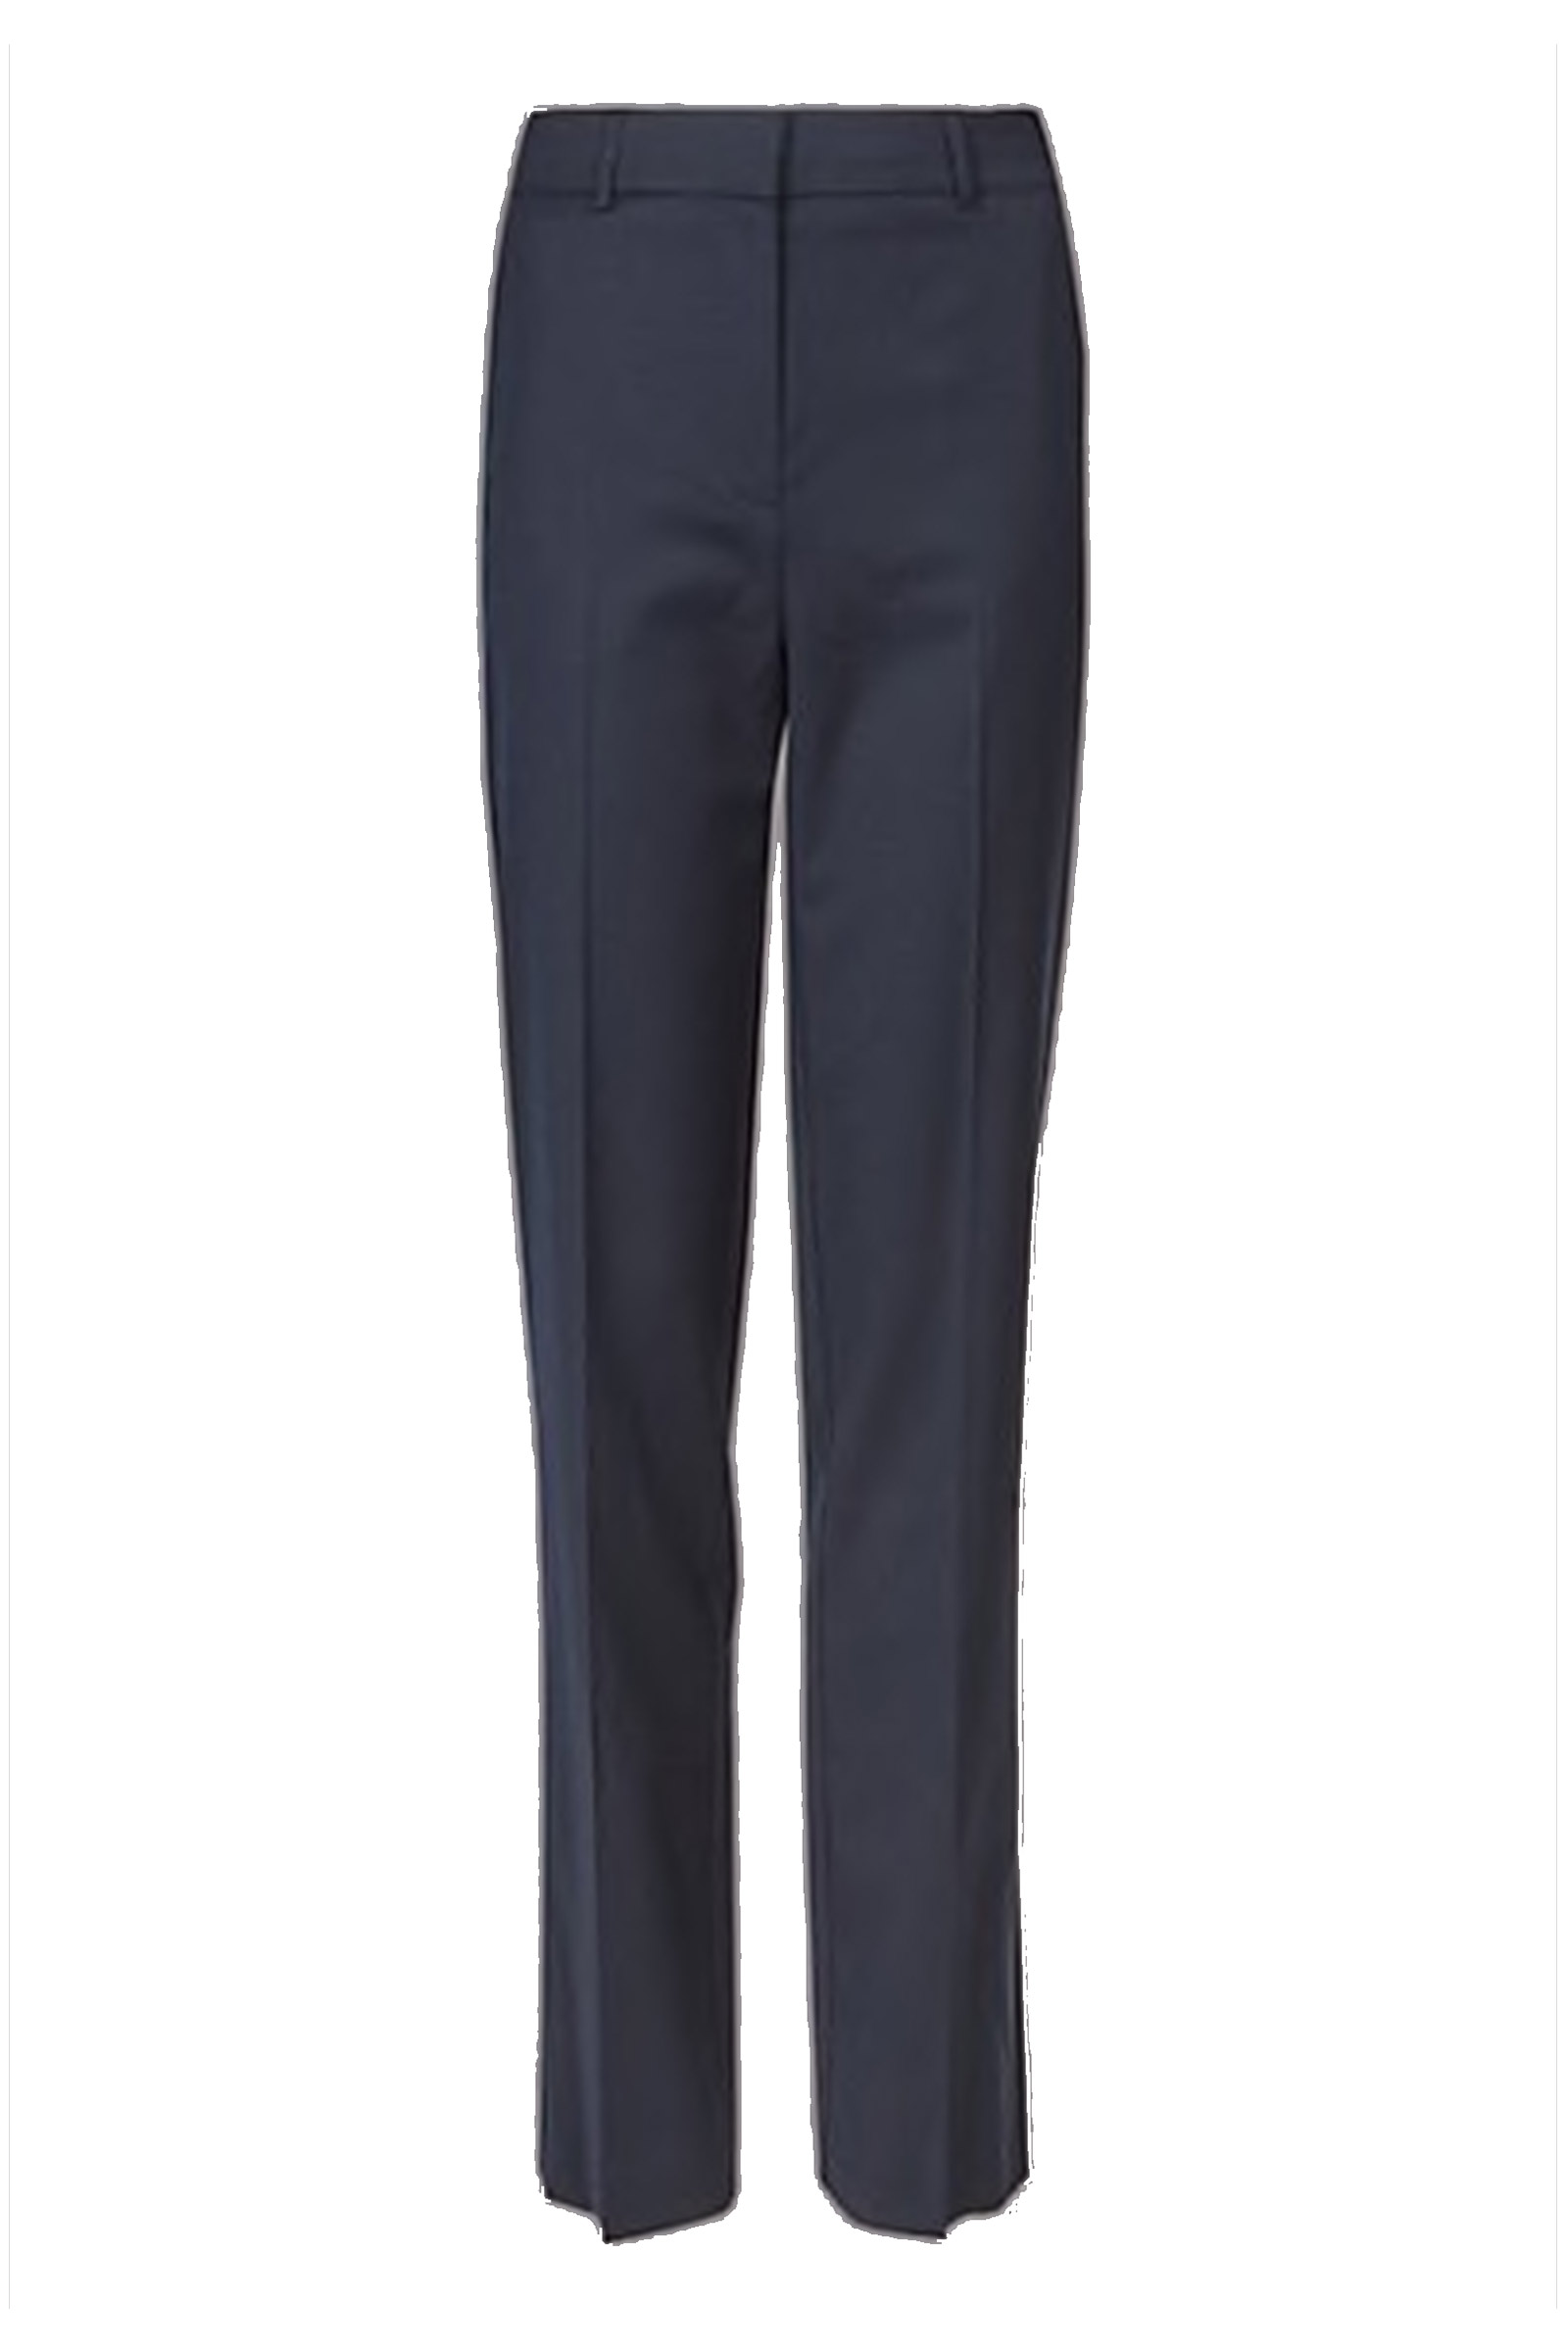 Click to Buy Marks and Spencer Trousers